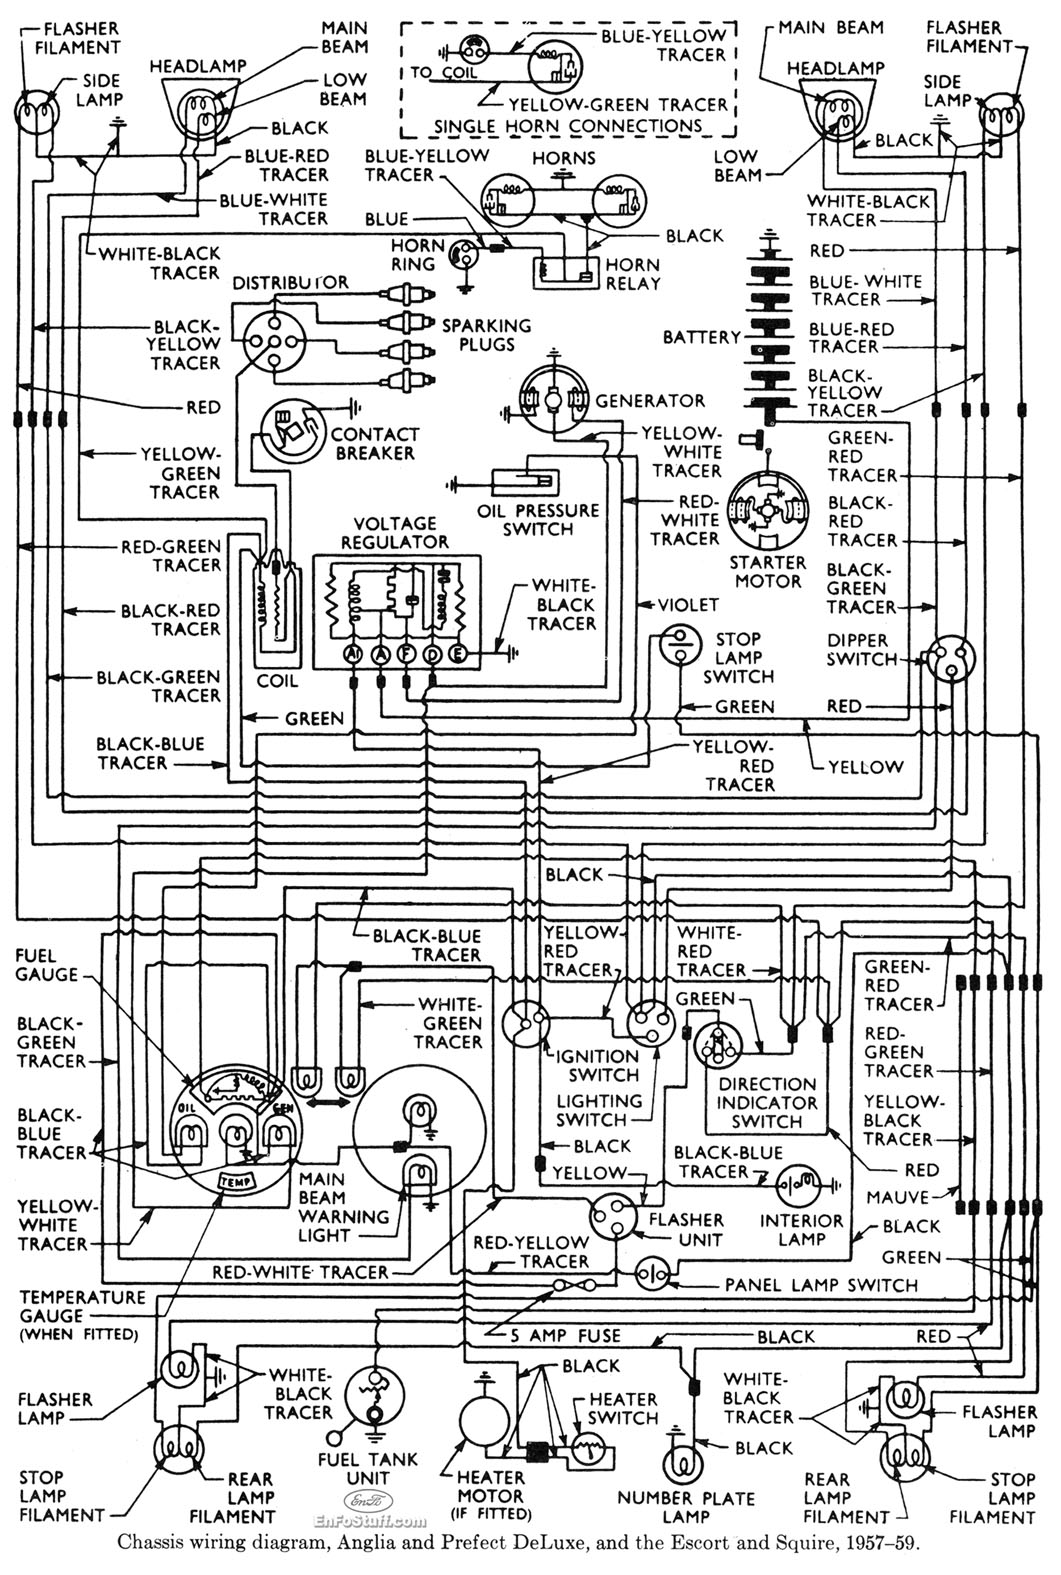 1986 Par Car Wiring Diagram - Library Of Wiring Diagram •